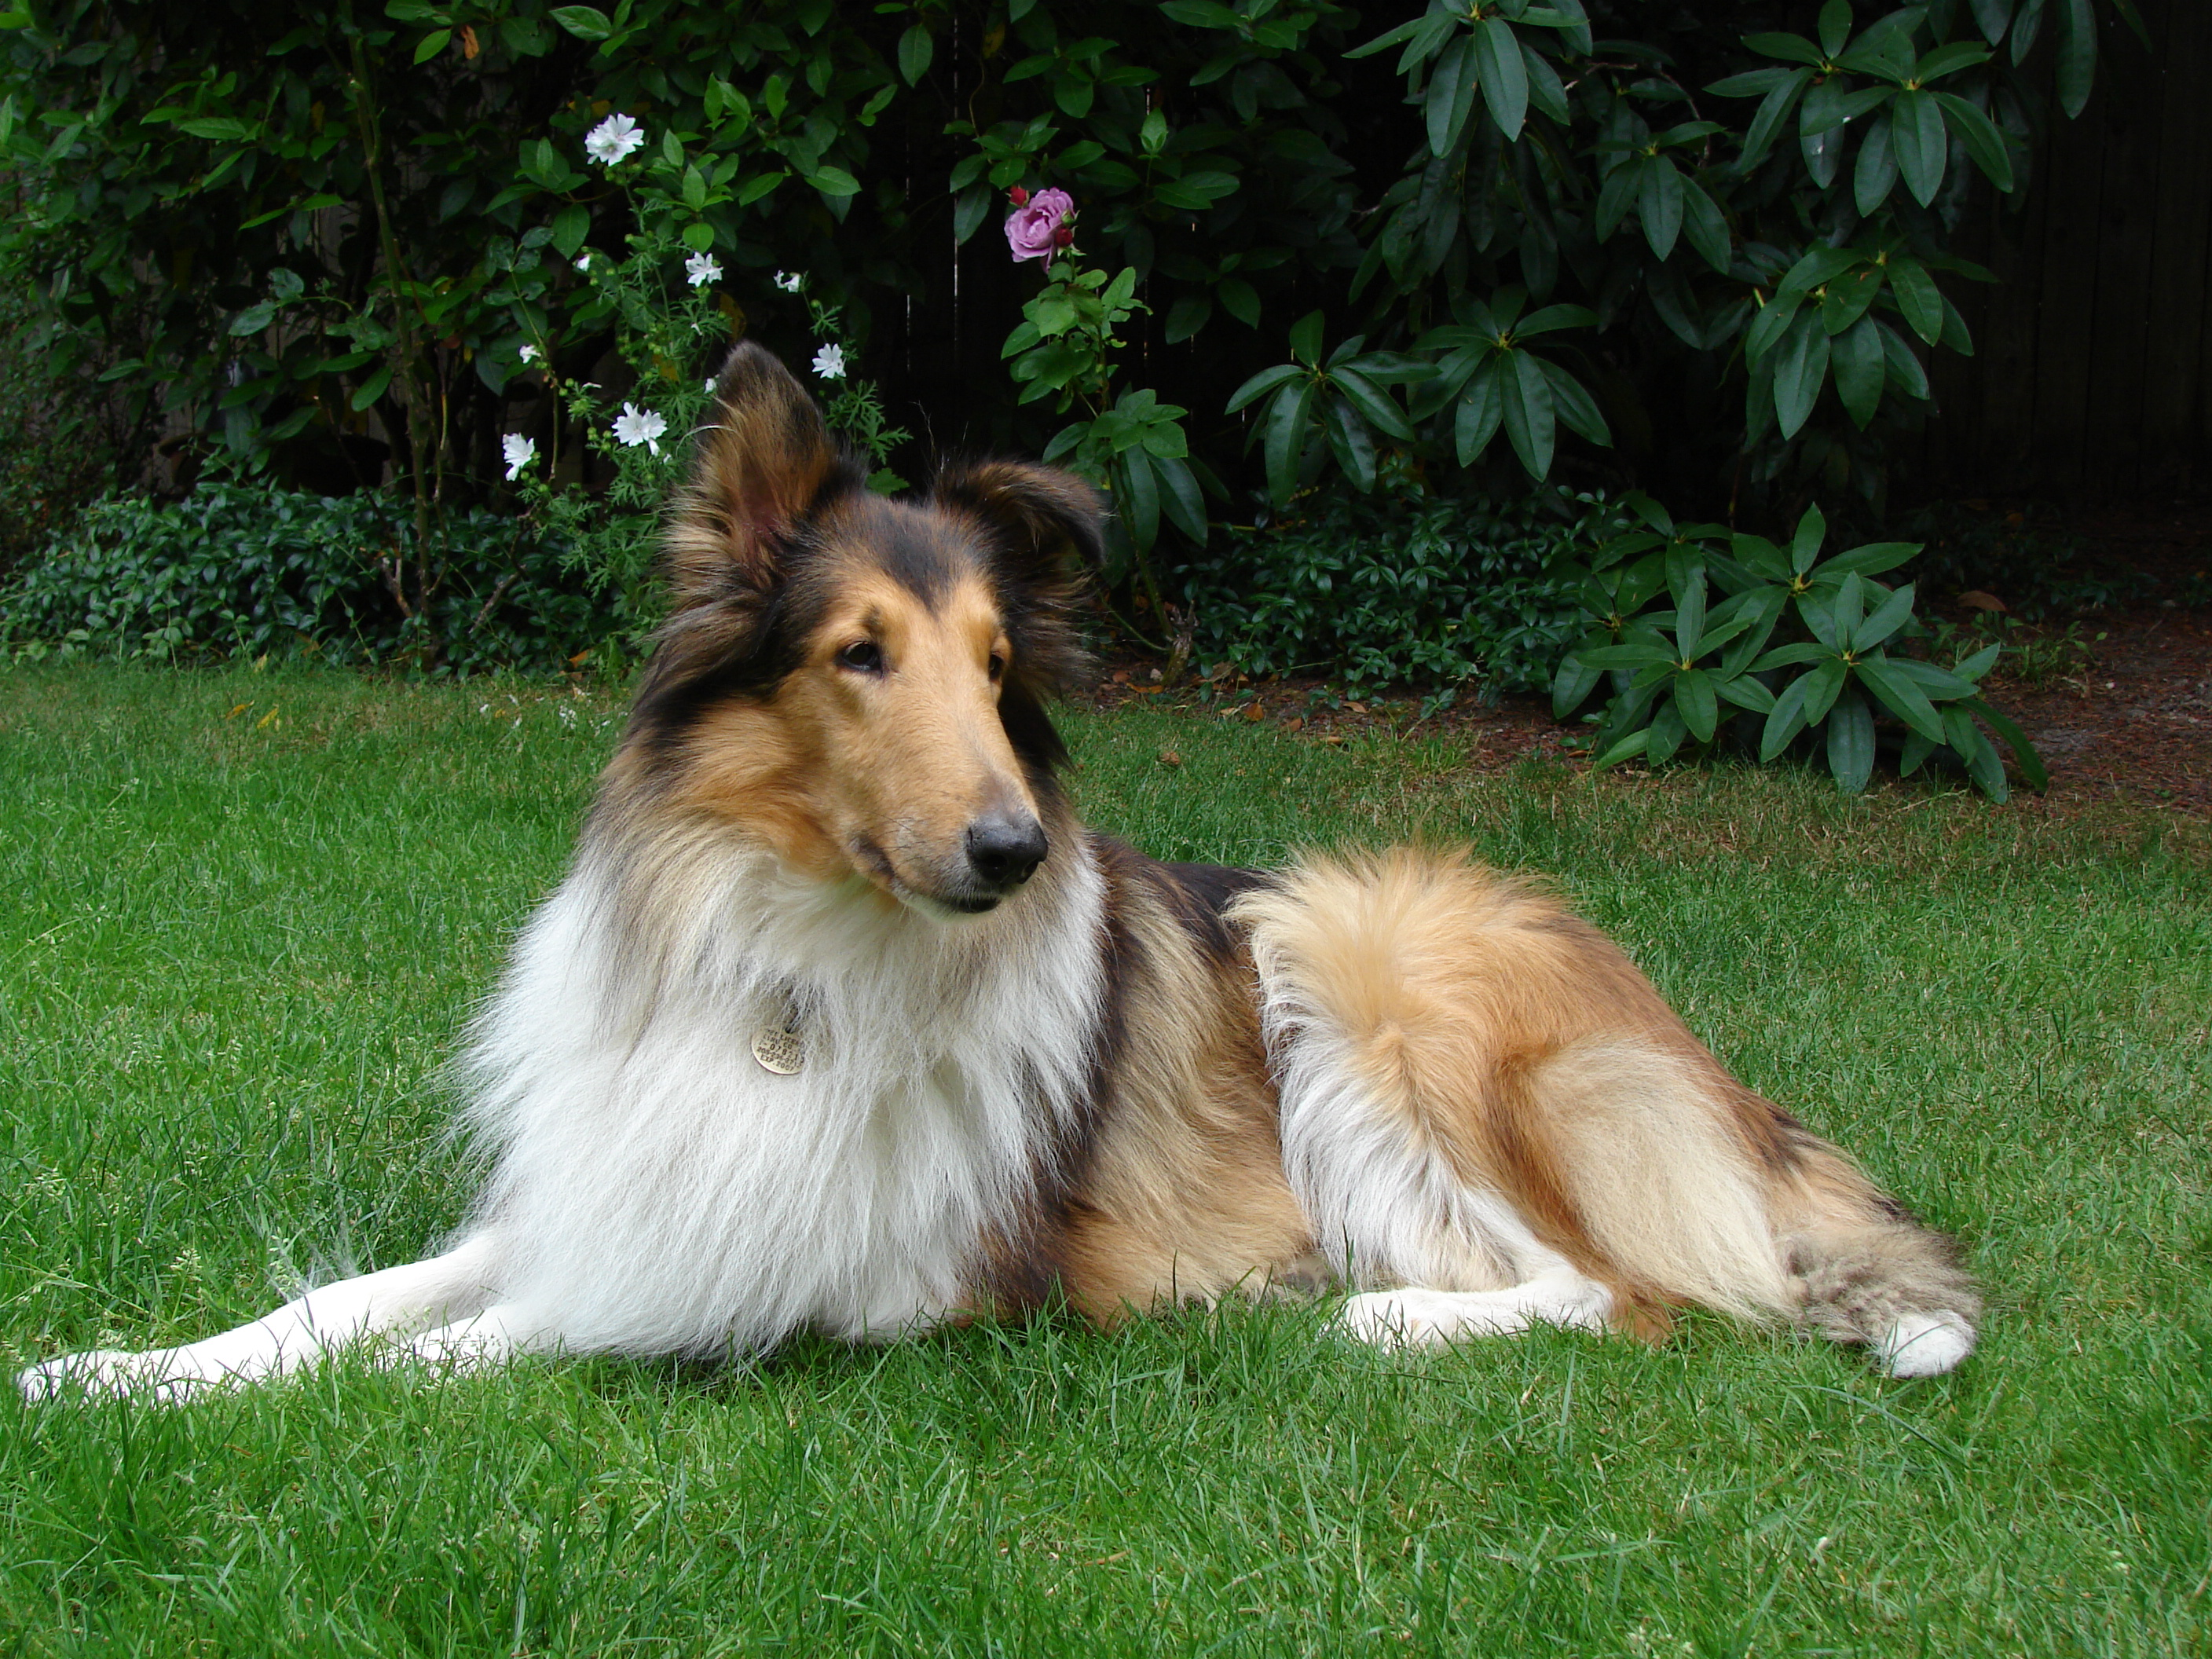 ec dog collie.jpg